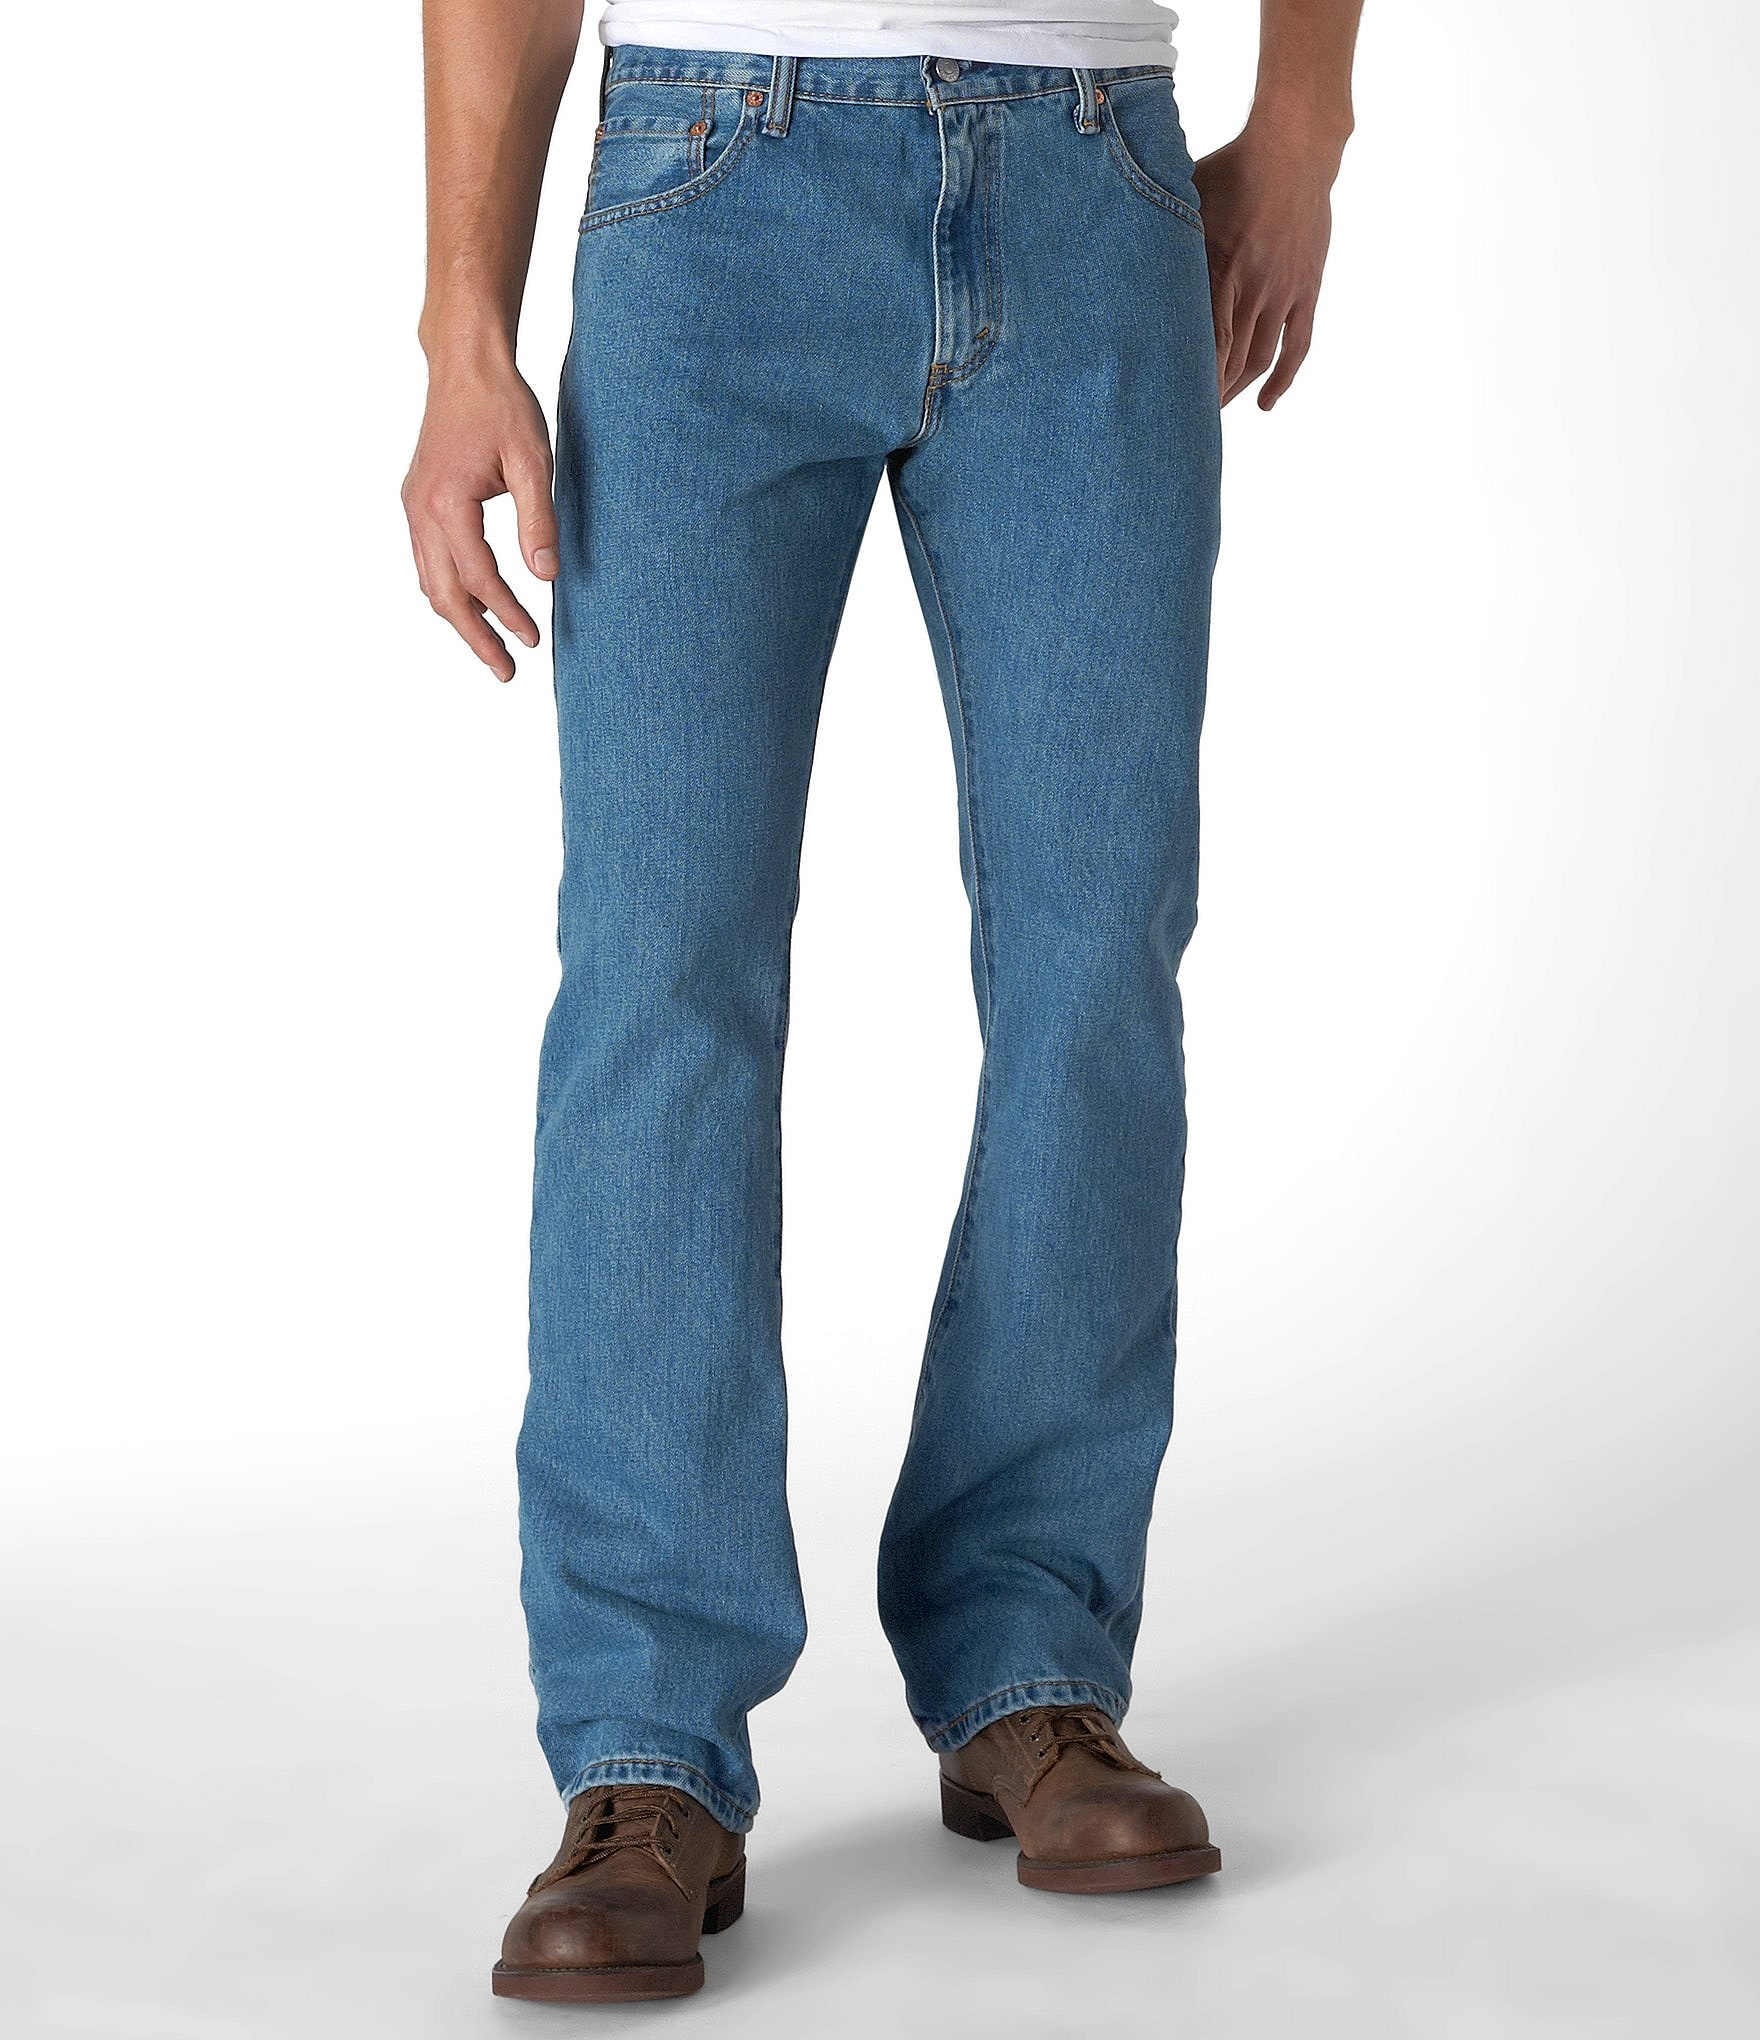 Up To 75% Off At Levi's